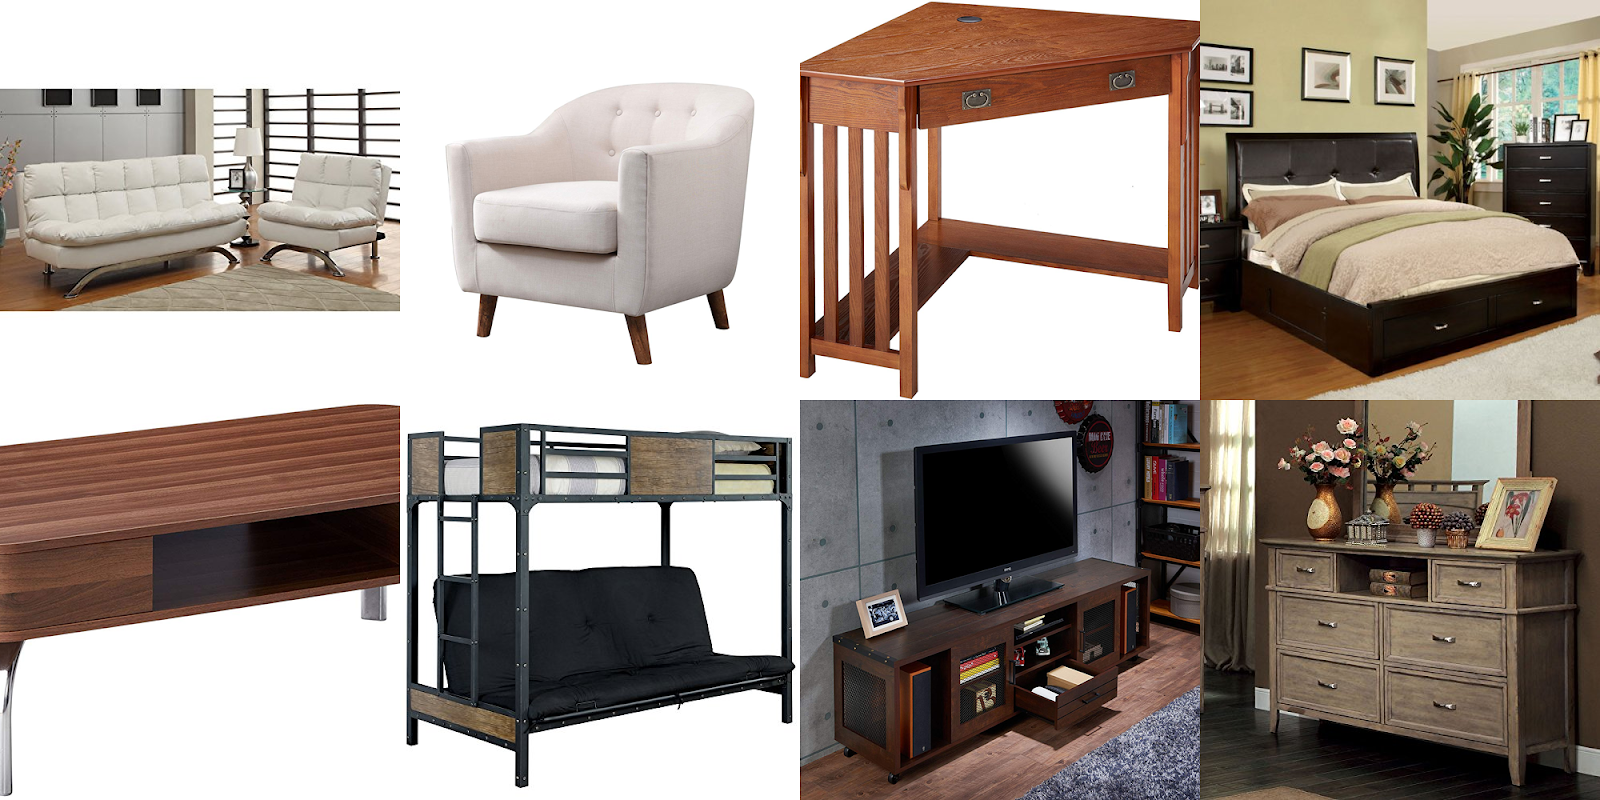 [DEAD] *RUN* PRICE MISTAKE On Bedding And Furniture! Over 70% Off!!